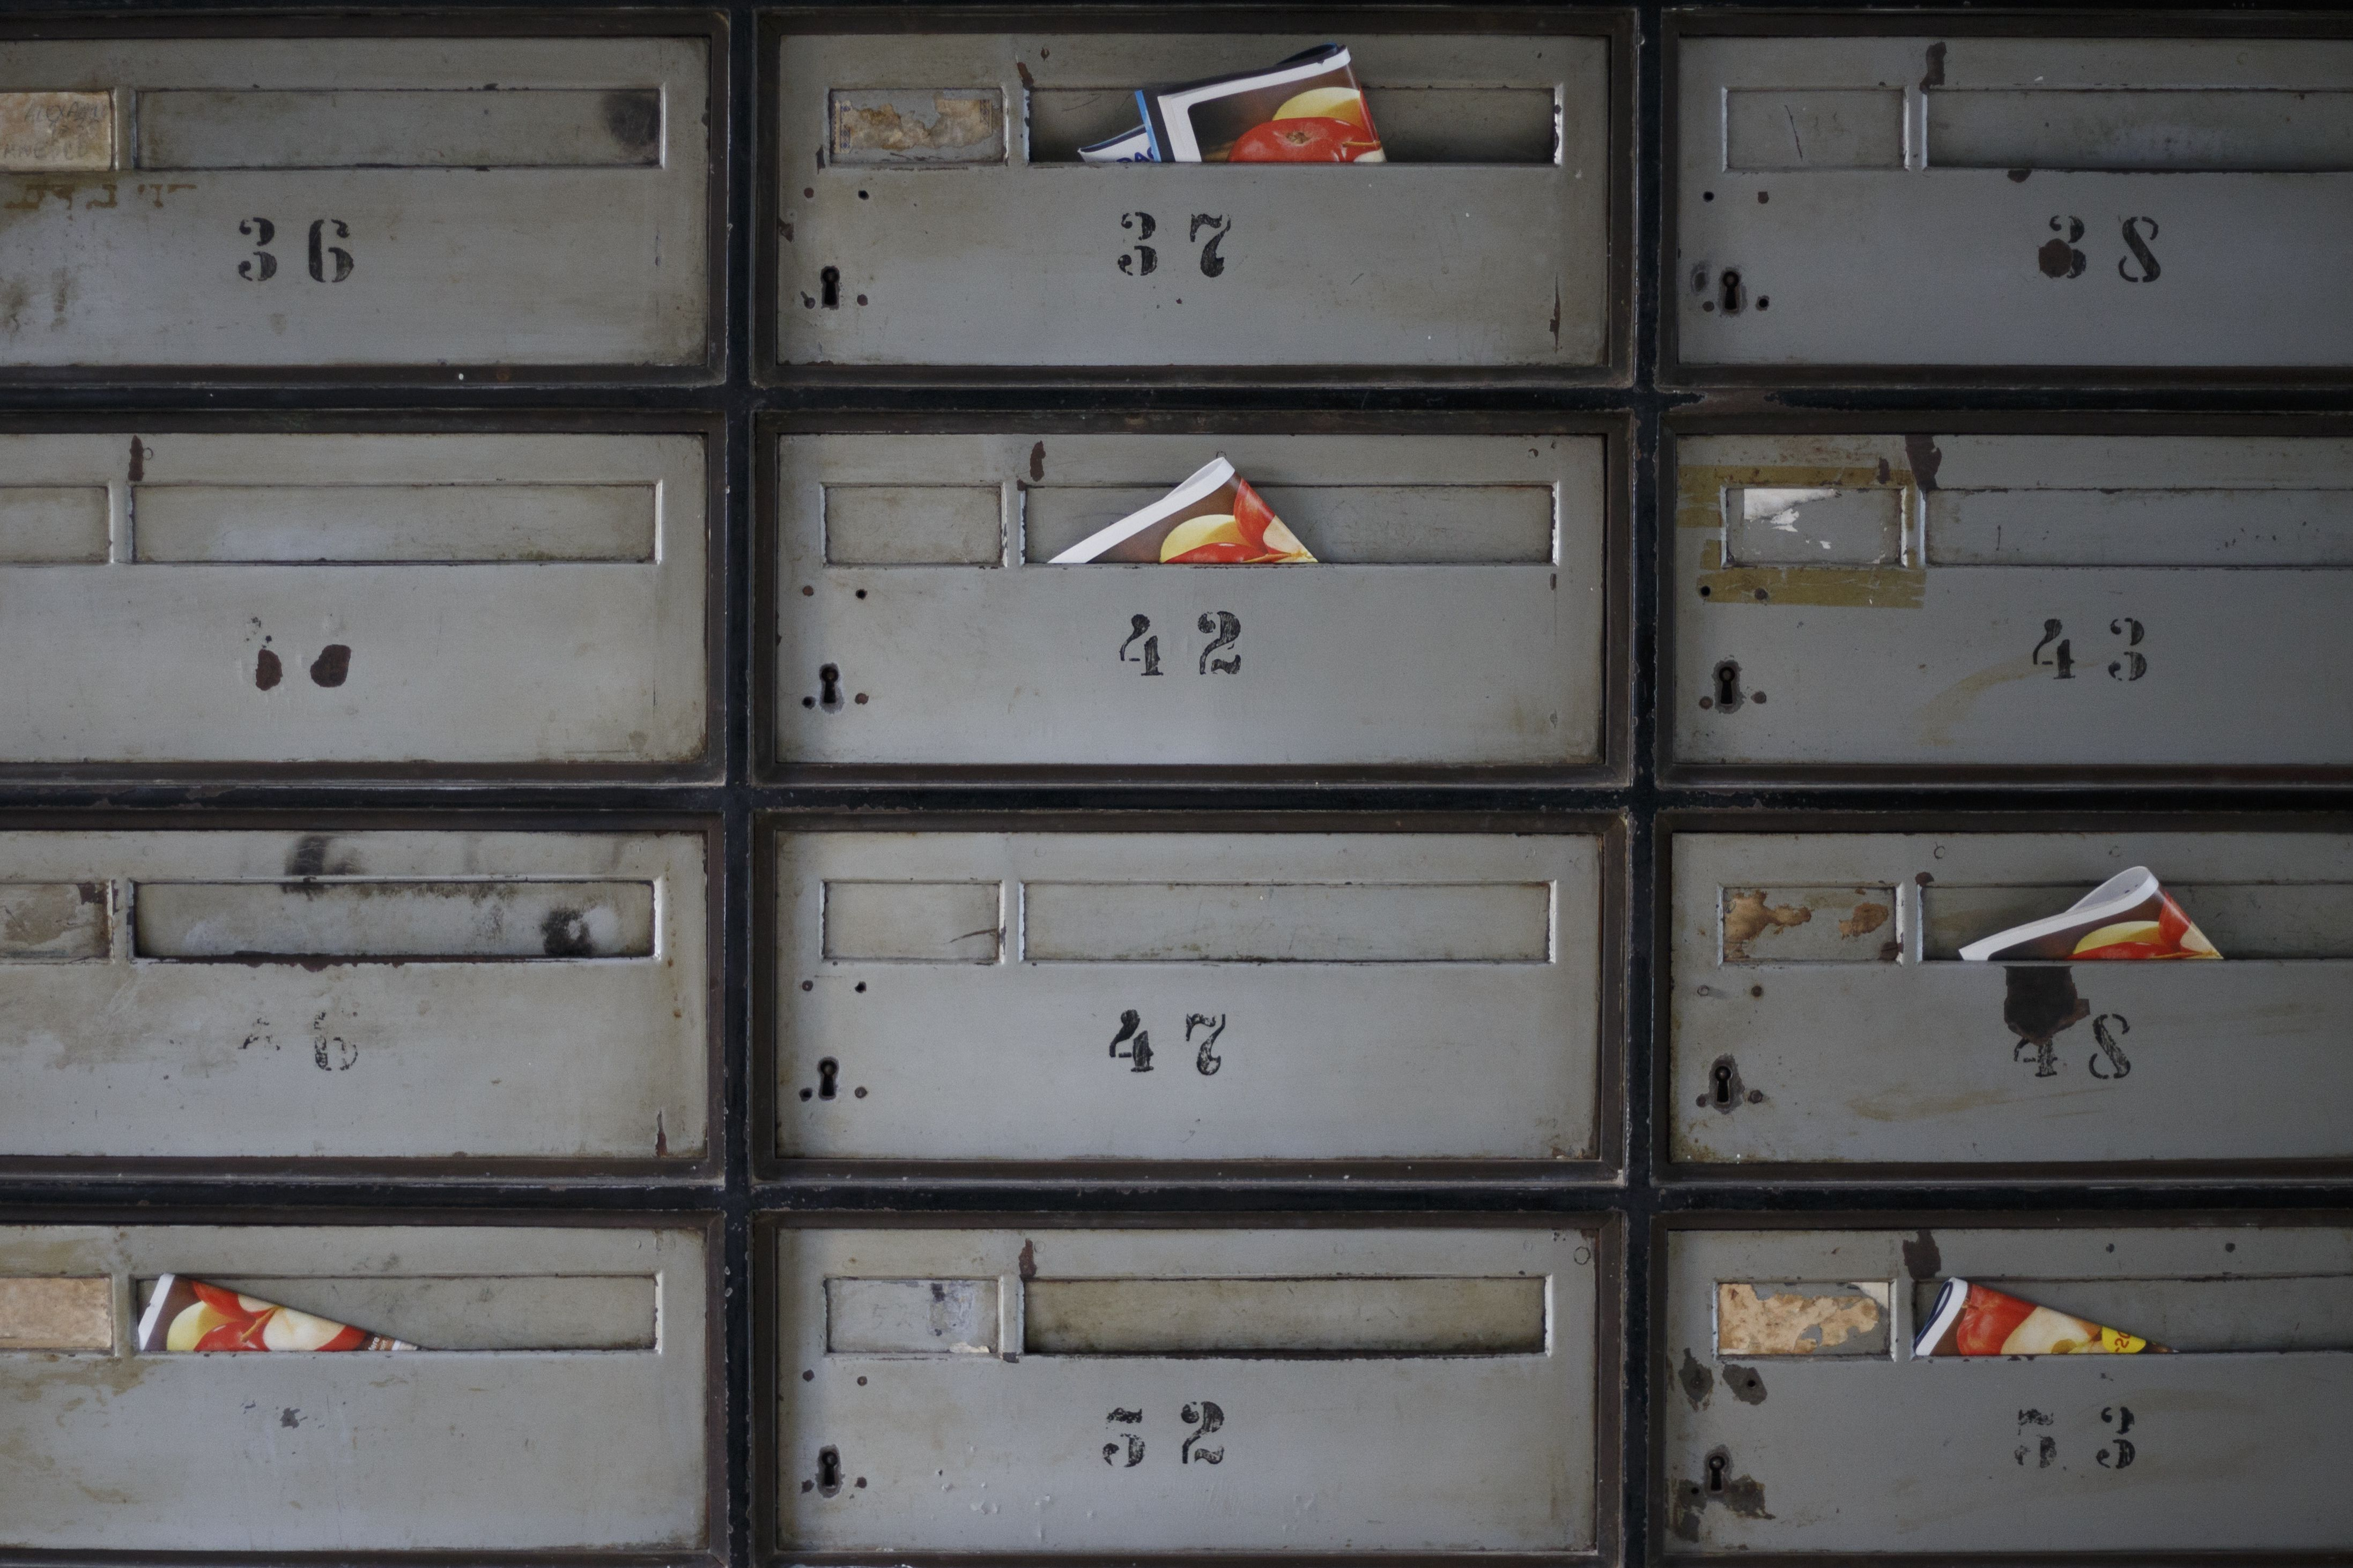 A close up of an apartment mail box bank with direct marketing mail sticking out of the boxes.